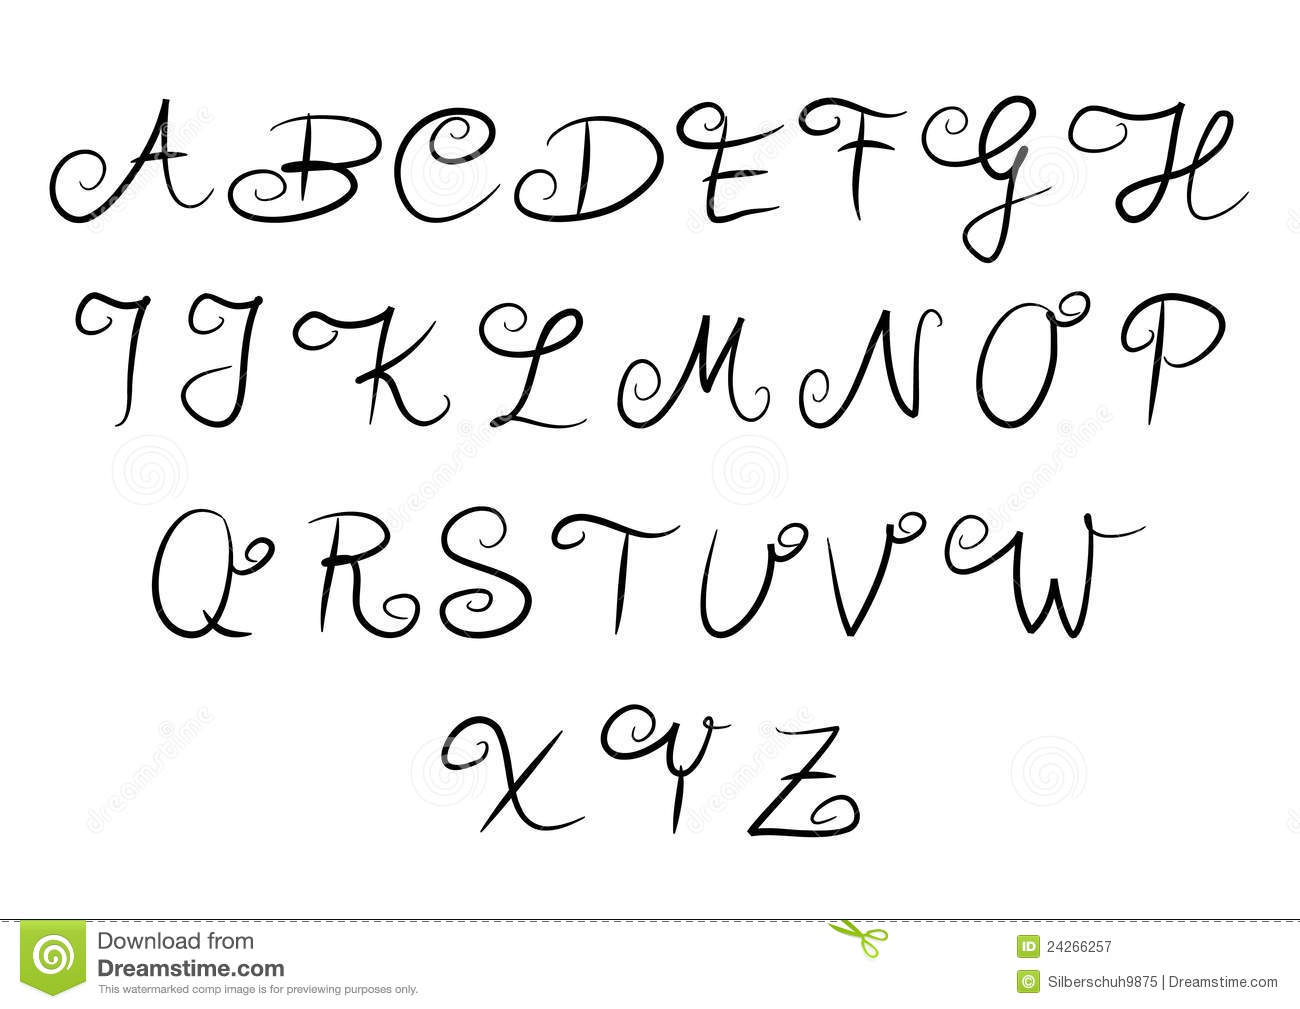 Worksheet Handwritten Alphabet handwritten alphabet royalty free stock photography image 24266257 alphabet